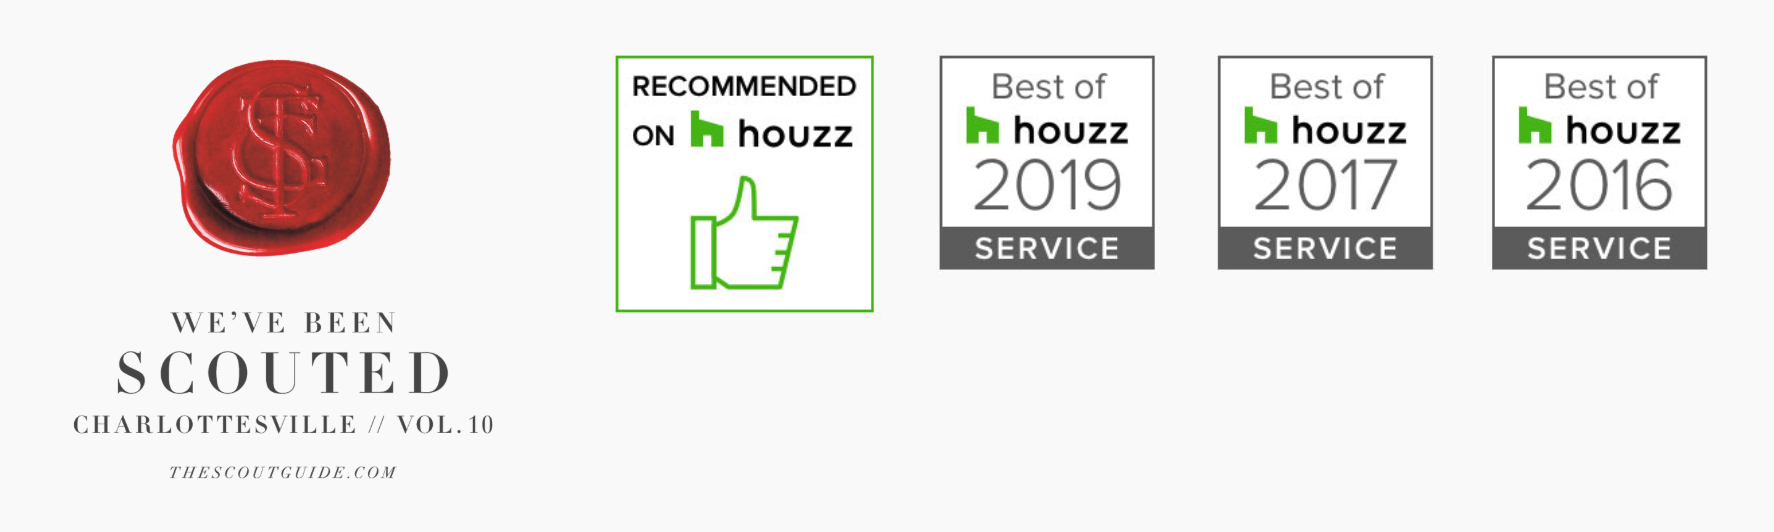 Halcyon Houzz Awards